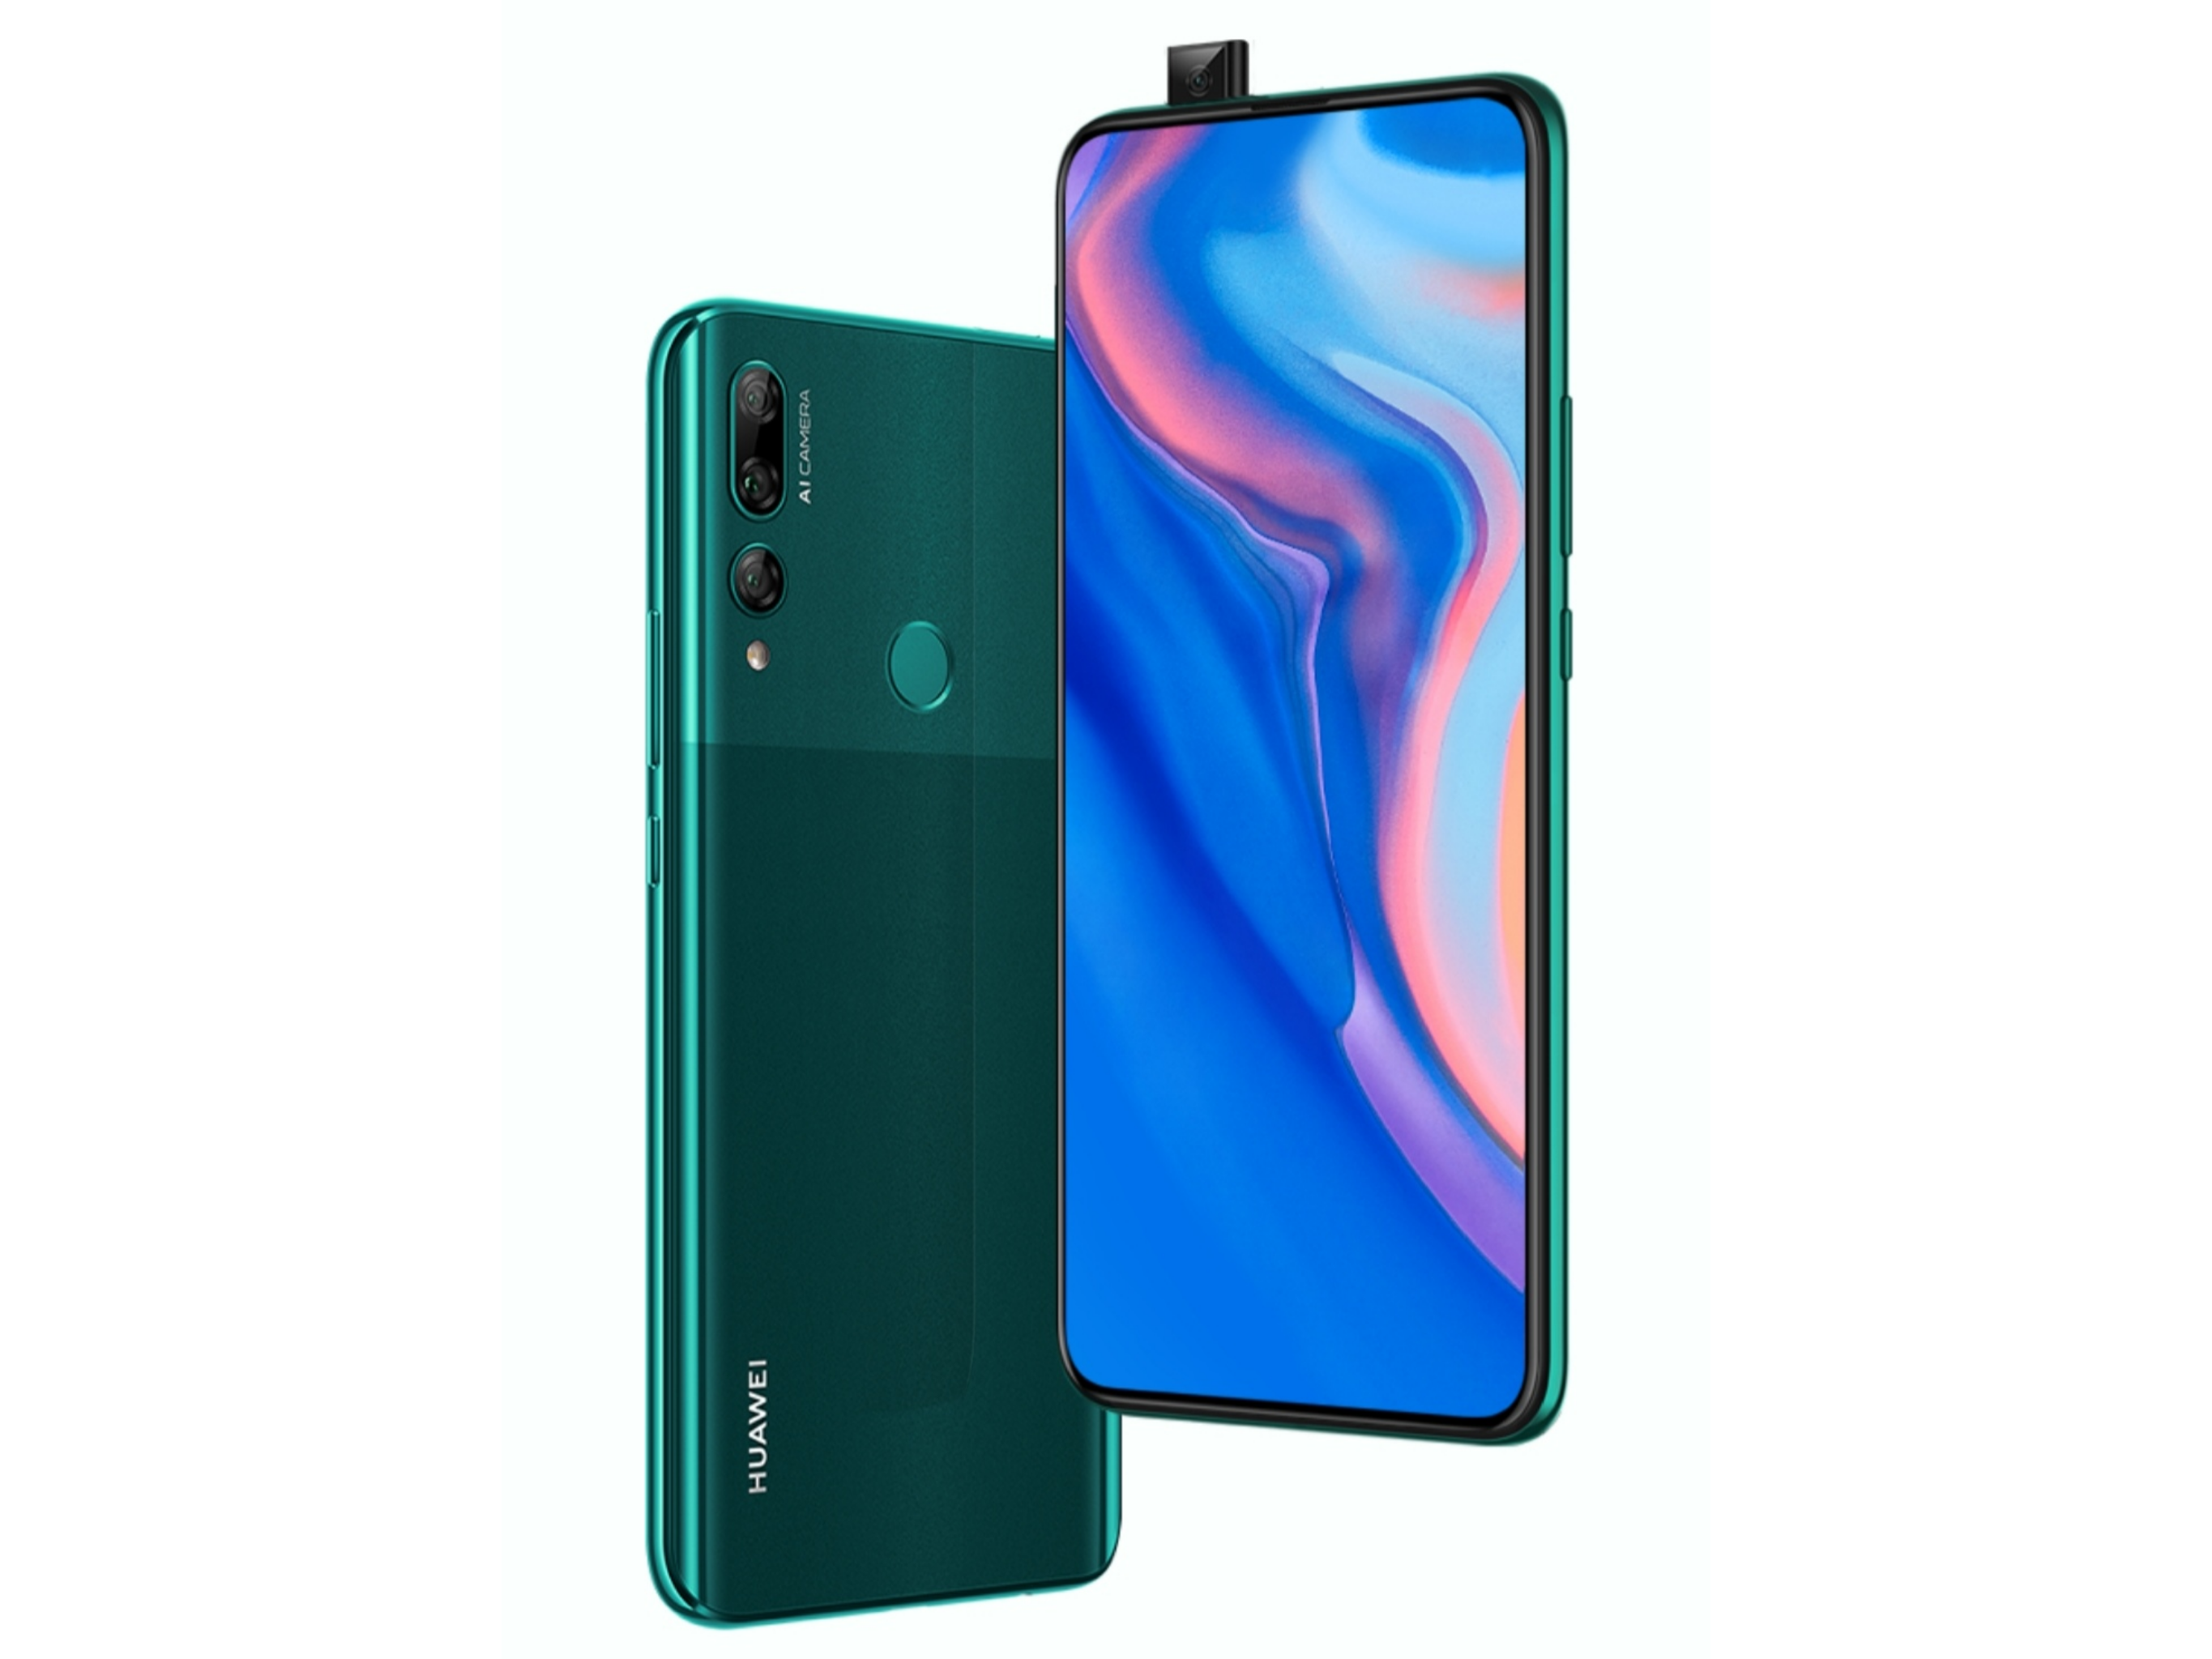 Huawei Y9 2019 review and price in Nigeria